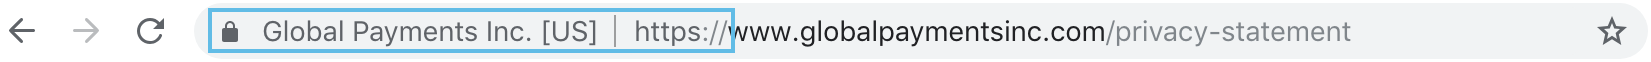 Example of a Secure URL: HTTPS